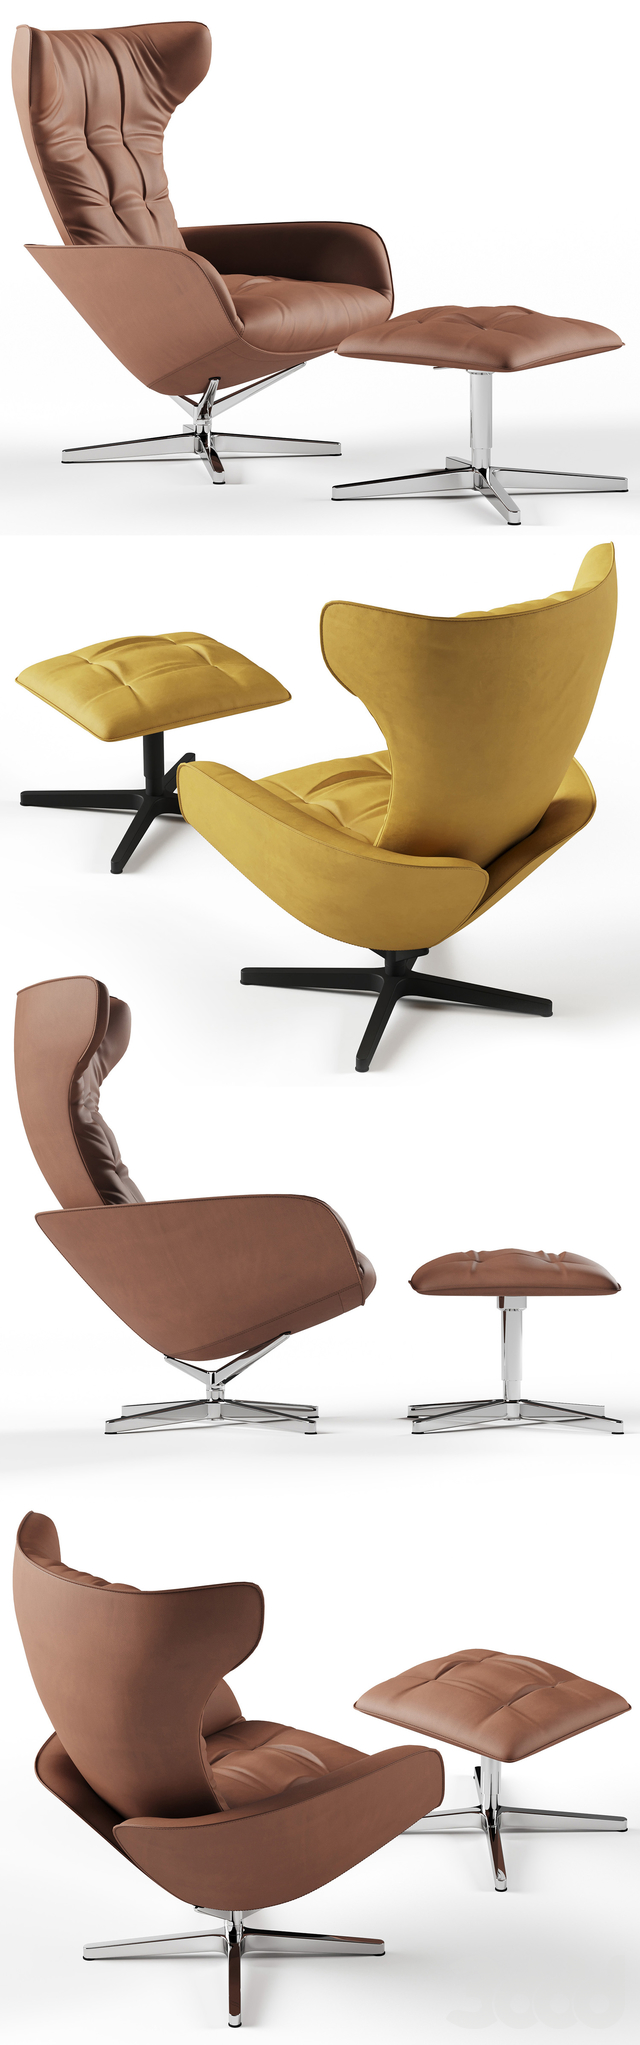 Walter Knoll Onsa Chair and Pouf